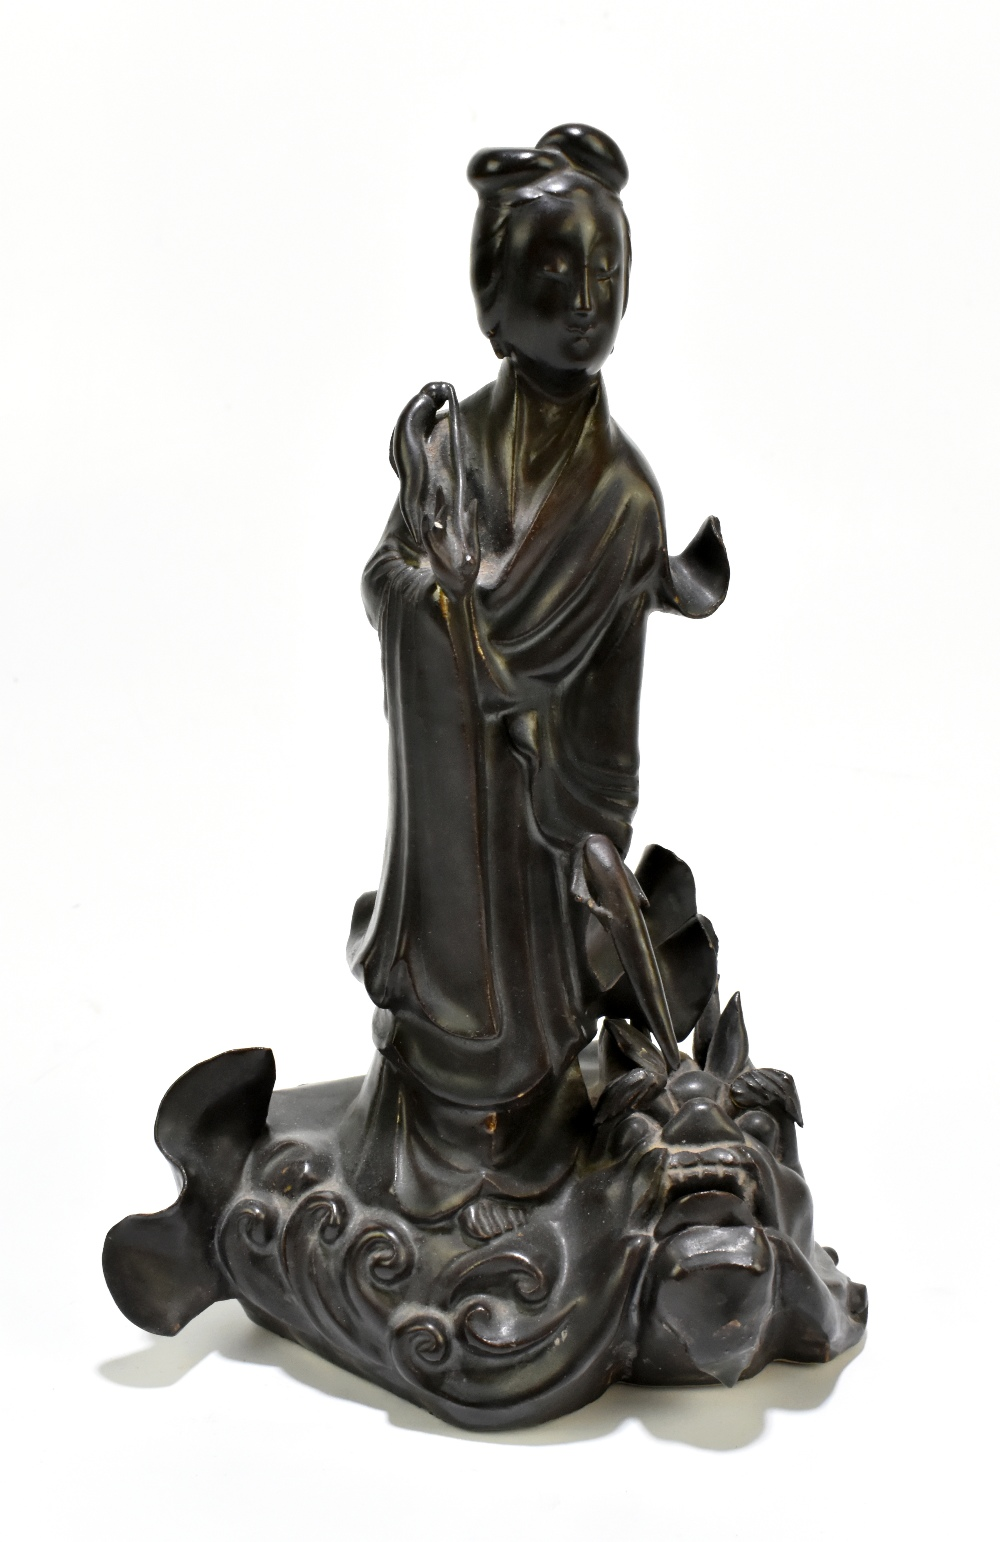 A 19th century Chinese porcelain figure representing Guan Ying standing on a mythical creature,